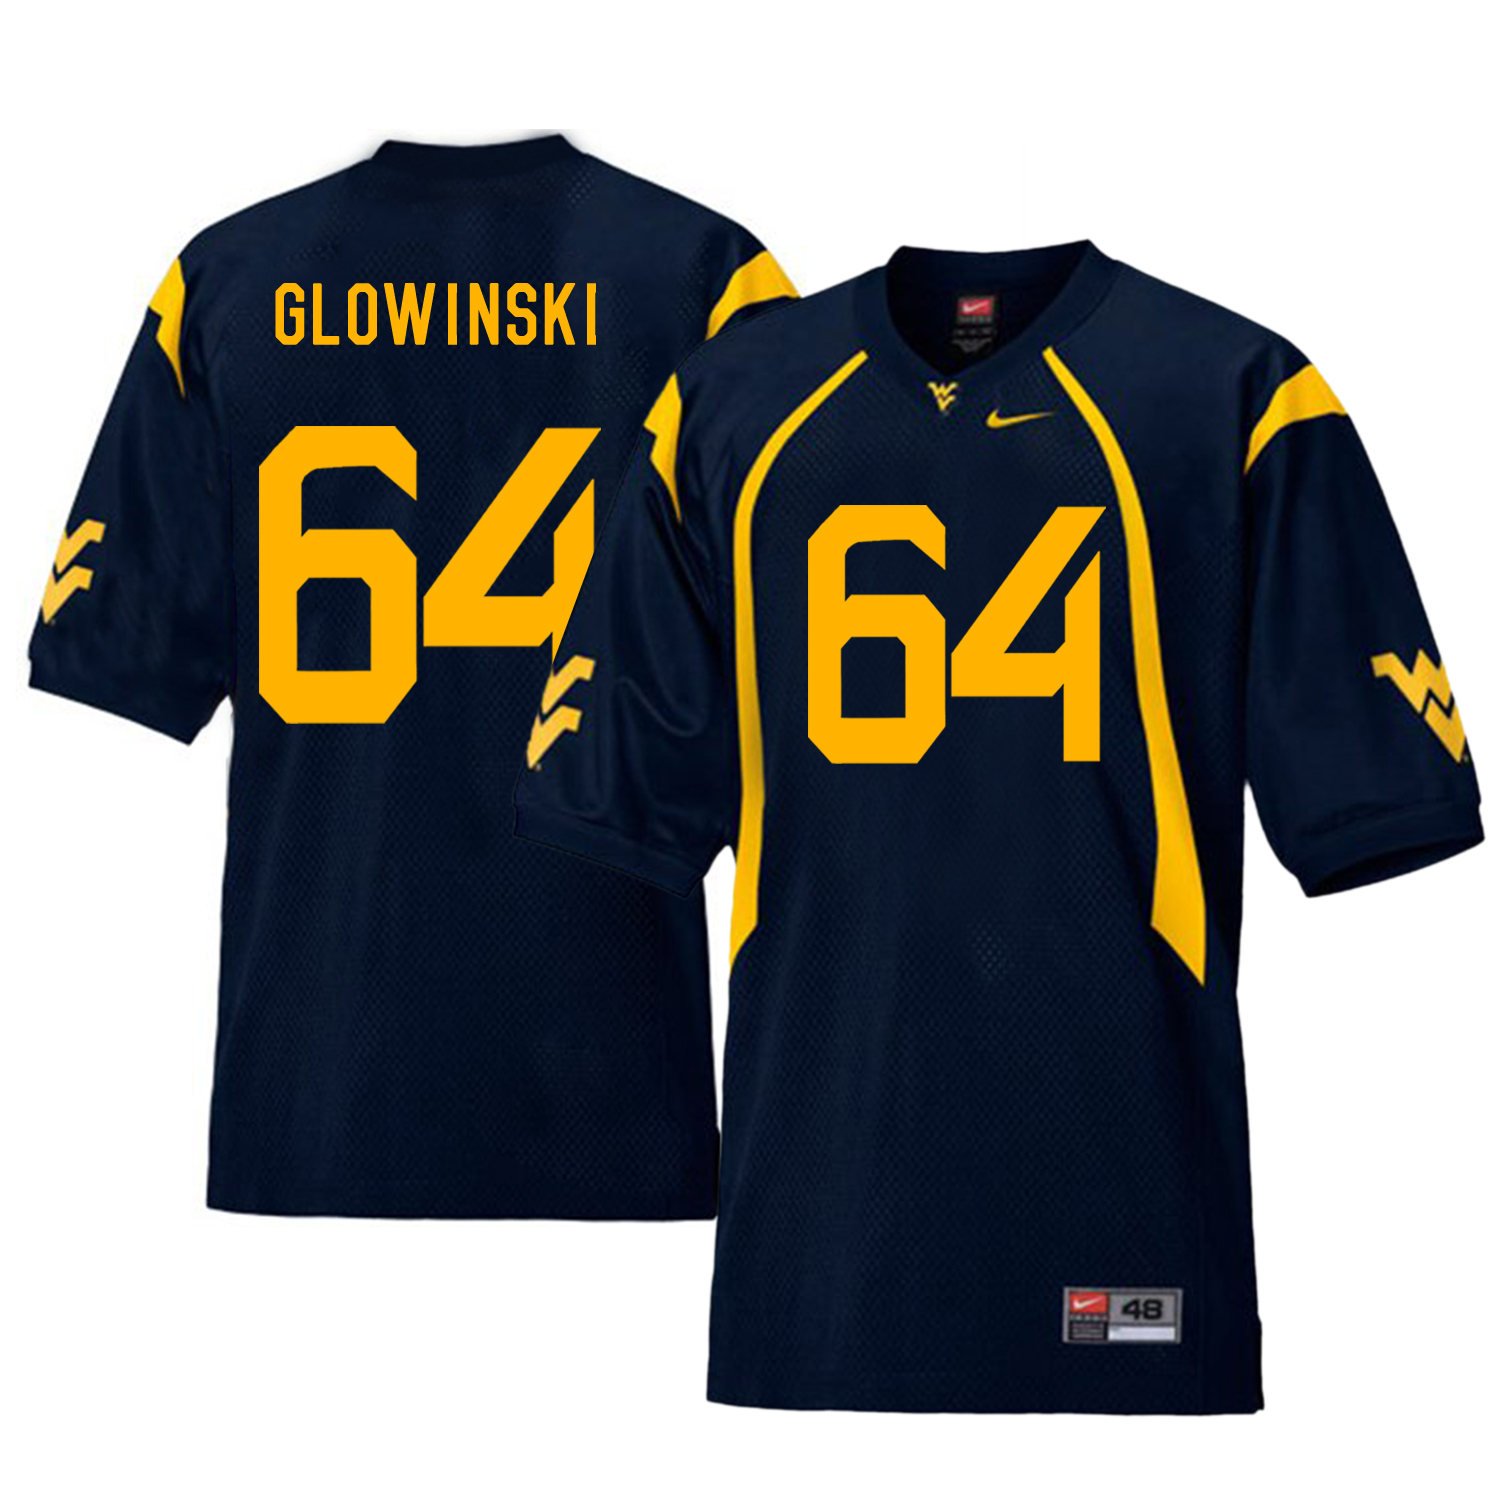 West Virginia Mountaineers 64 Mark Glowinski Navy College Football Jersey